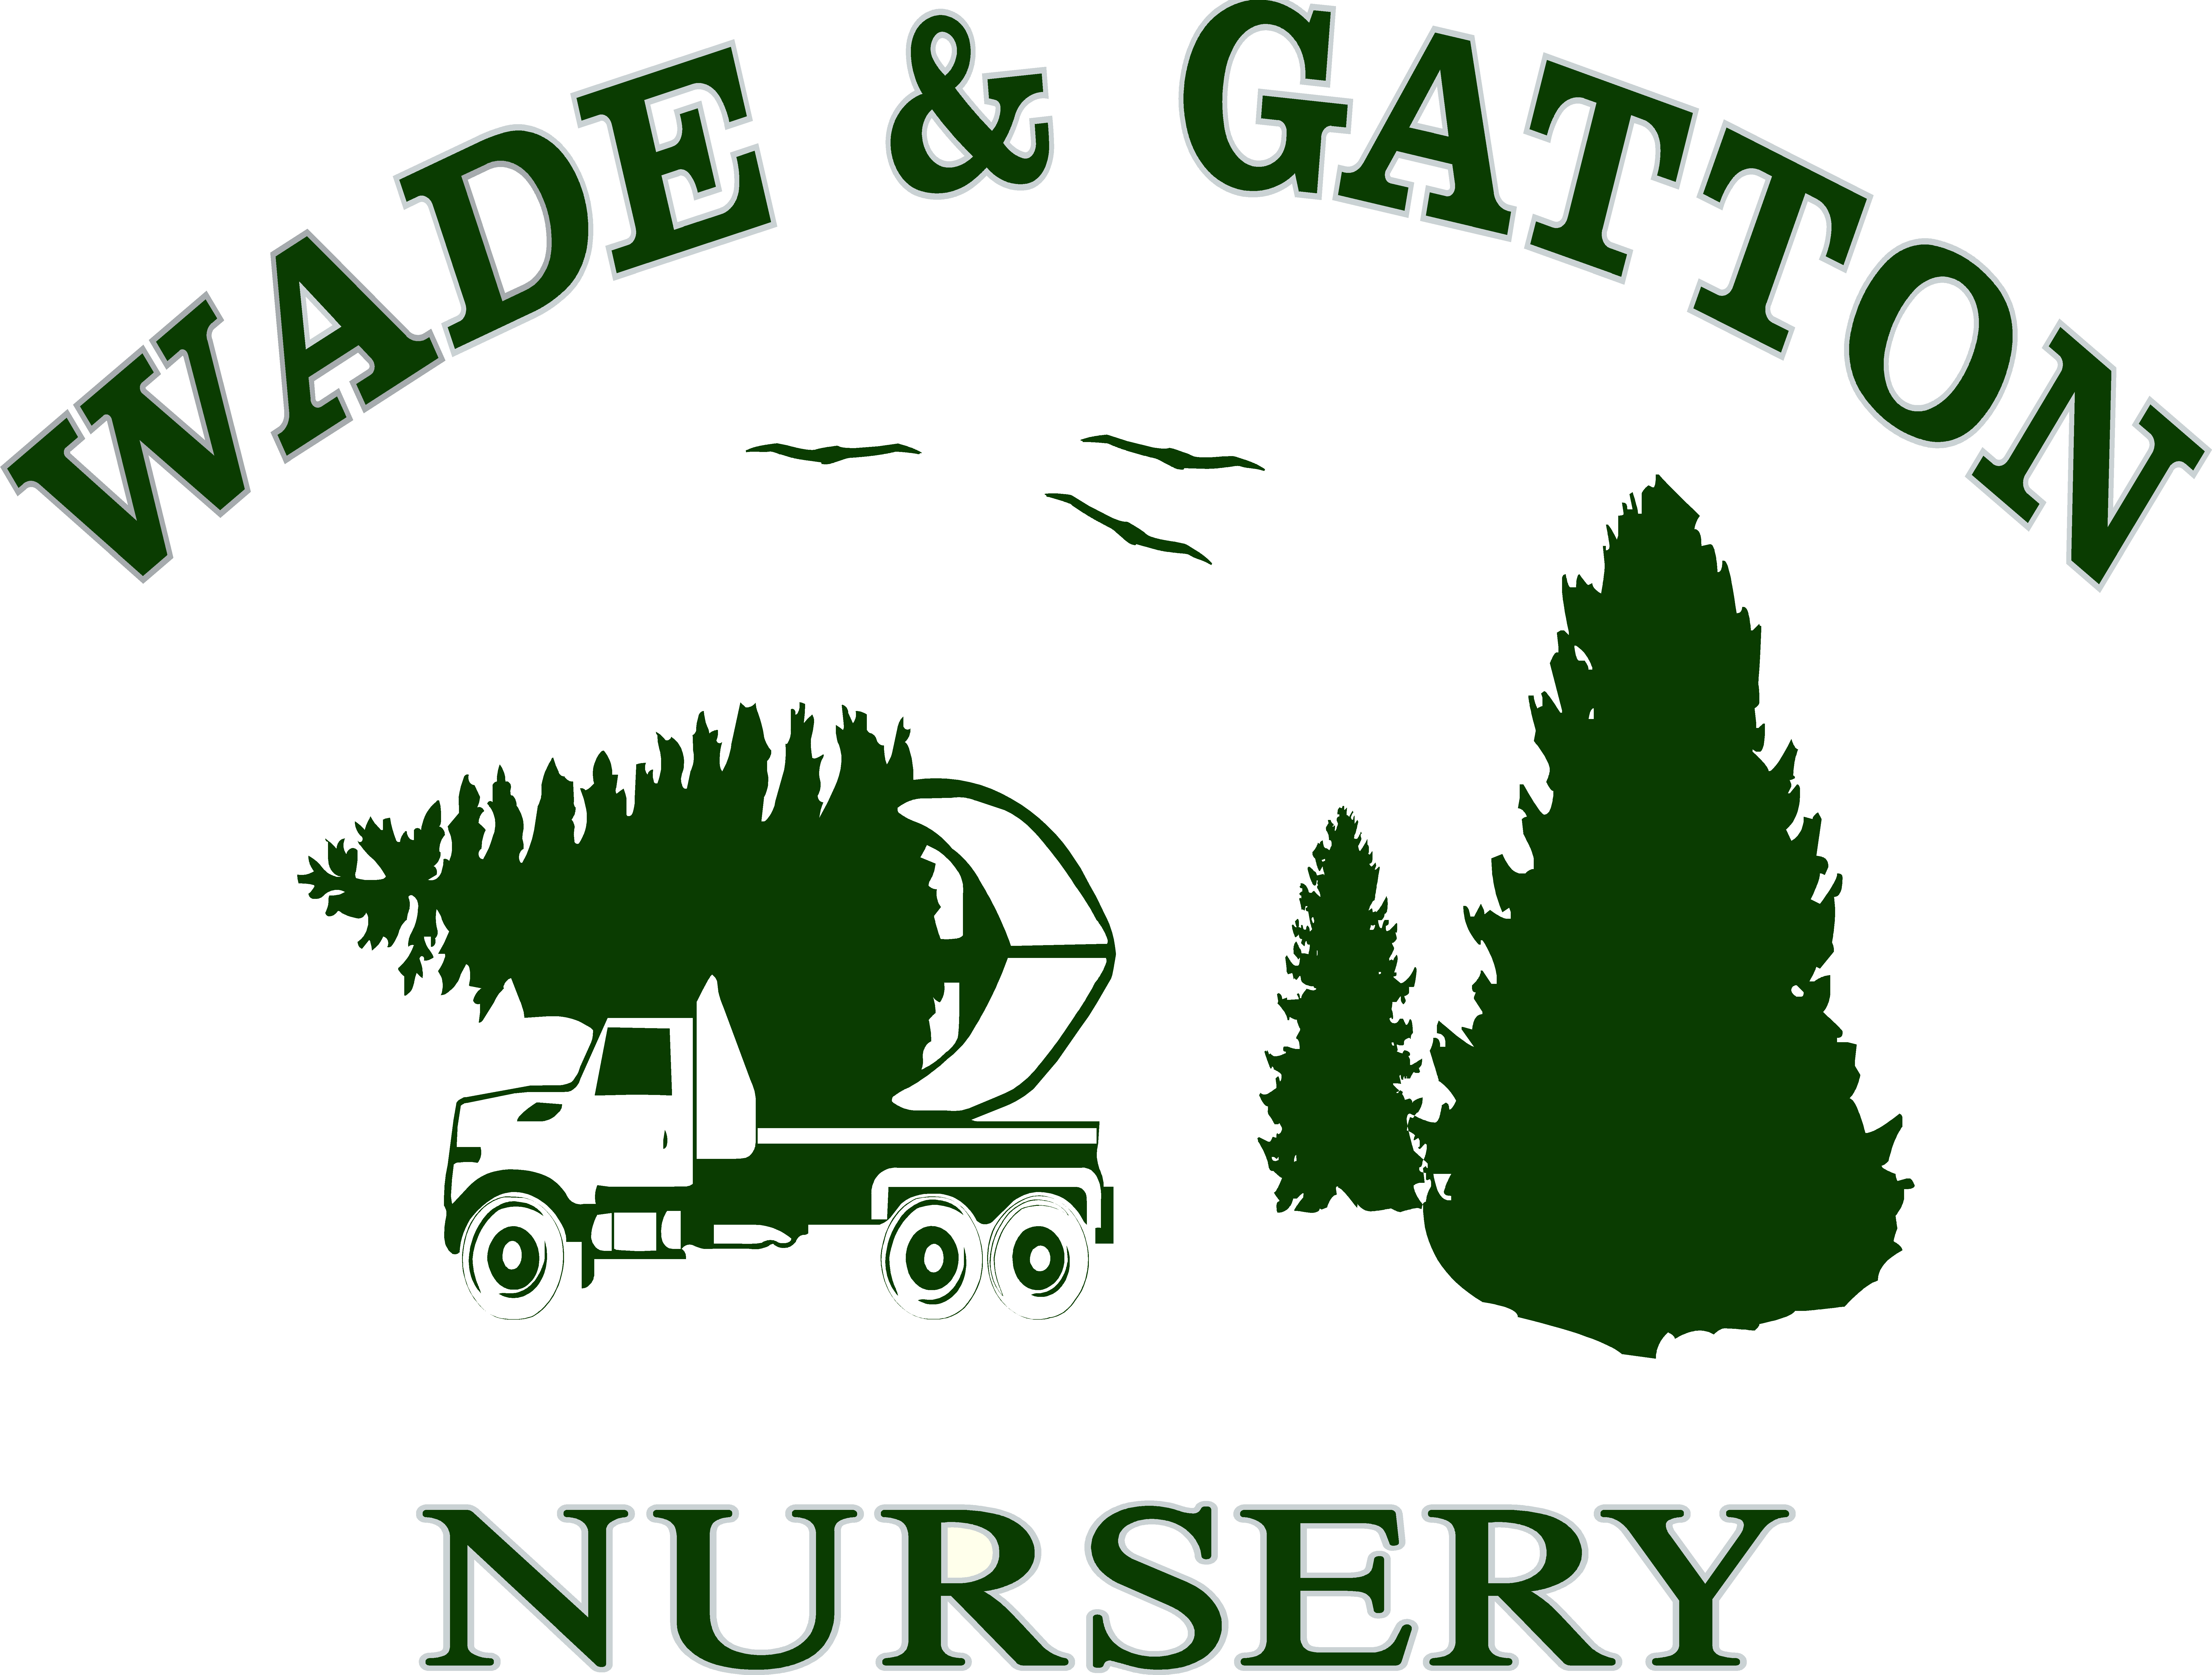 Wade & Gatton Nursery and Landscape LLC